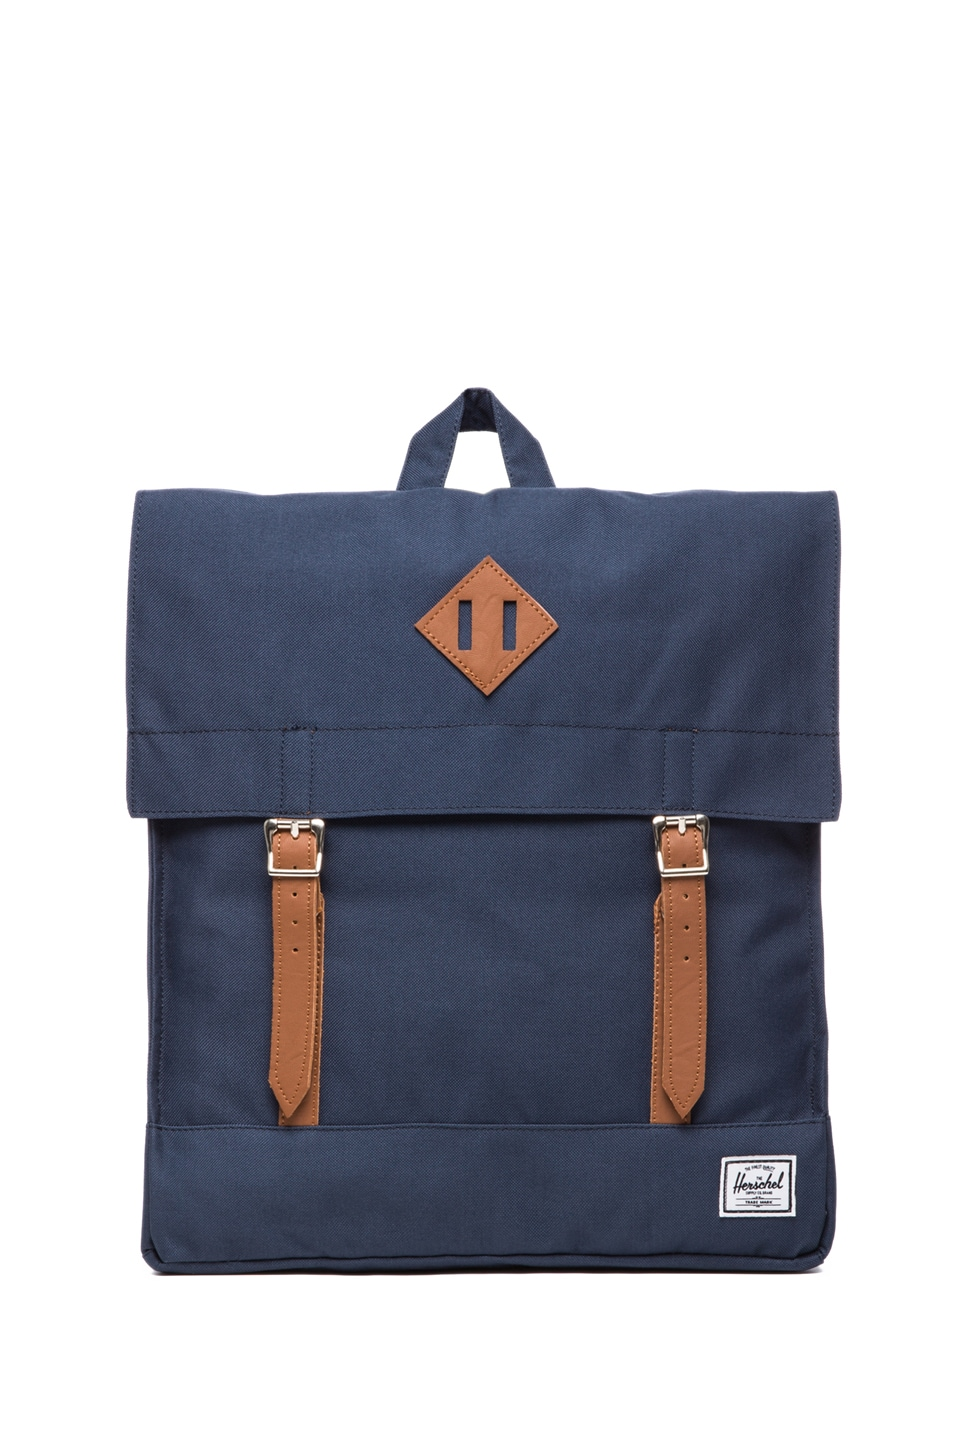 Herschel Supply Co. Survey Backpack in Navy